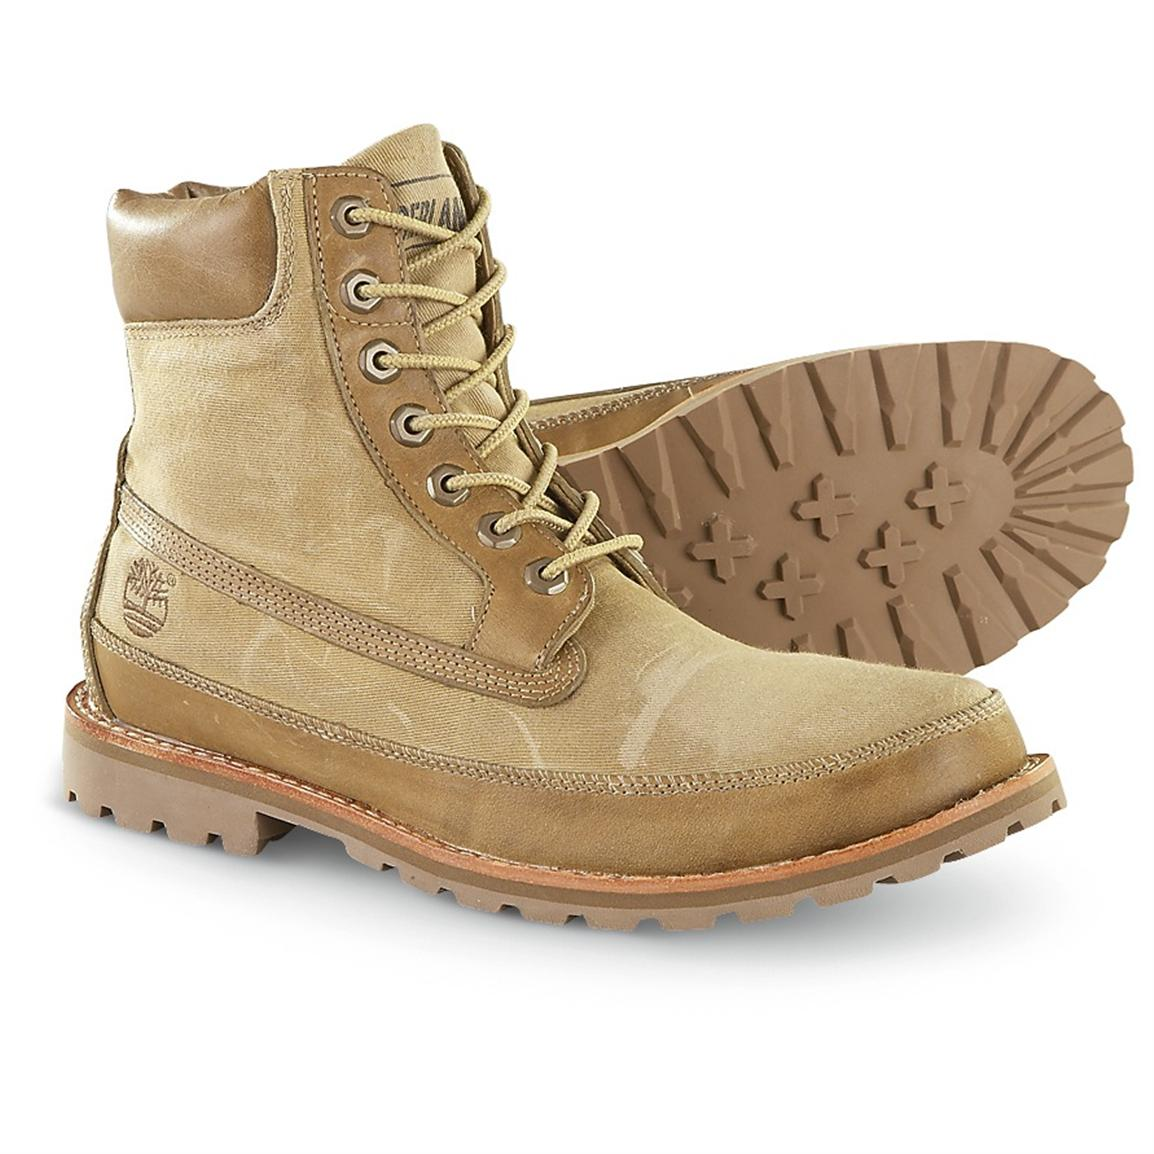 s timberland 174 waterproof boots beige 199695 casual